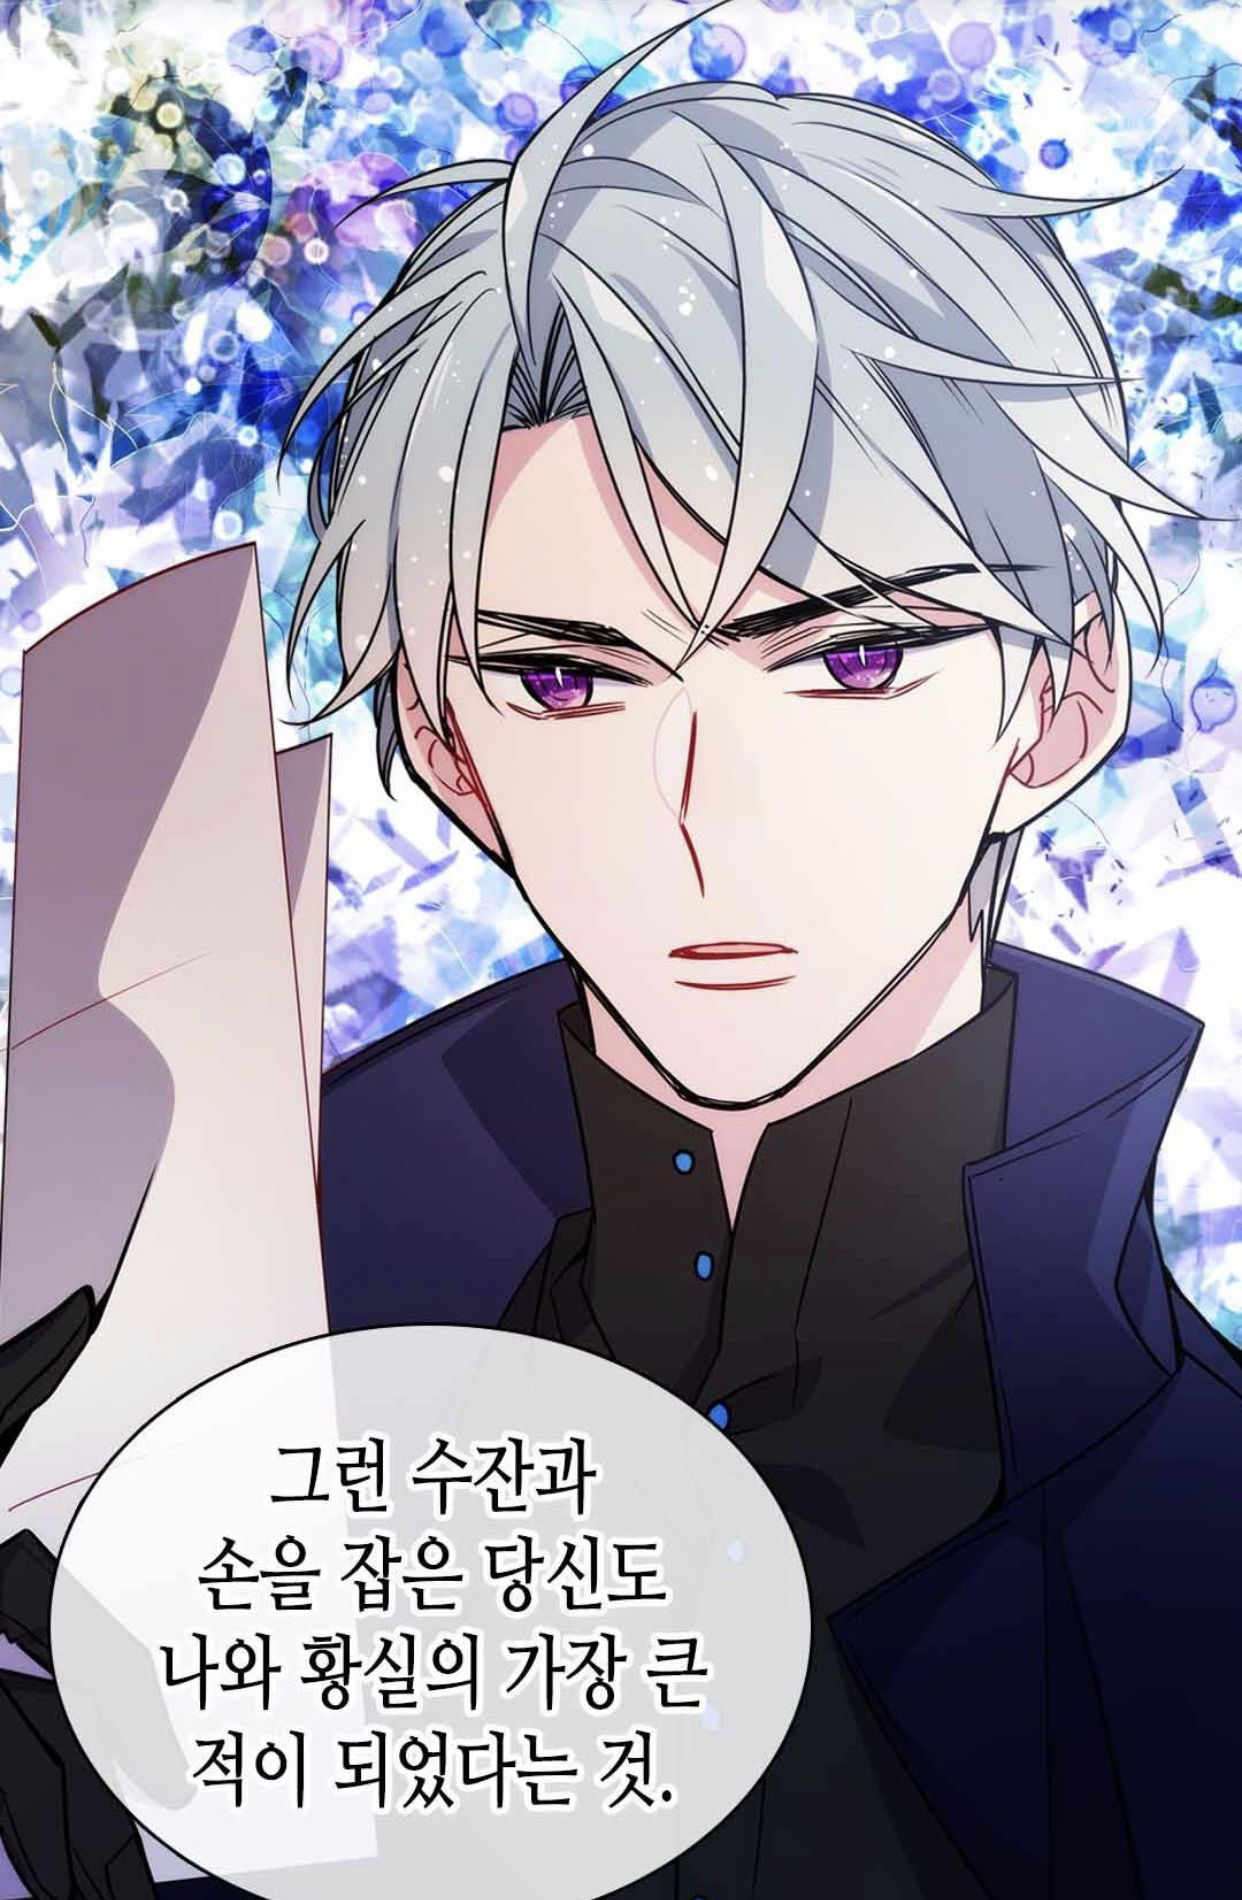 Chap 53 With Images Anime Webtoon Previous Life